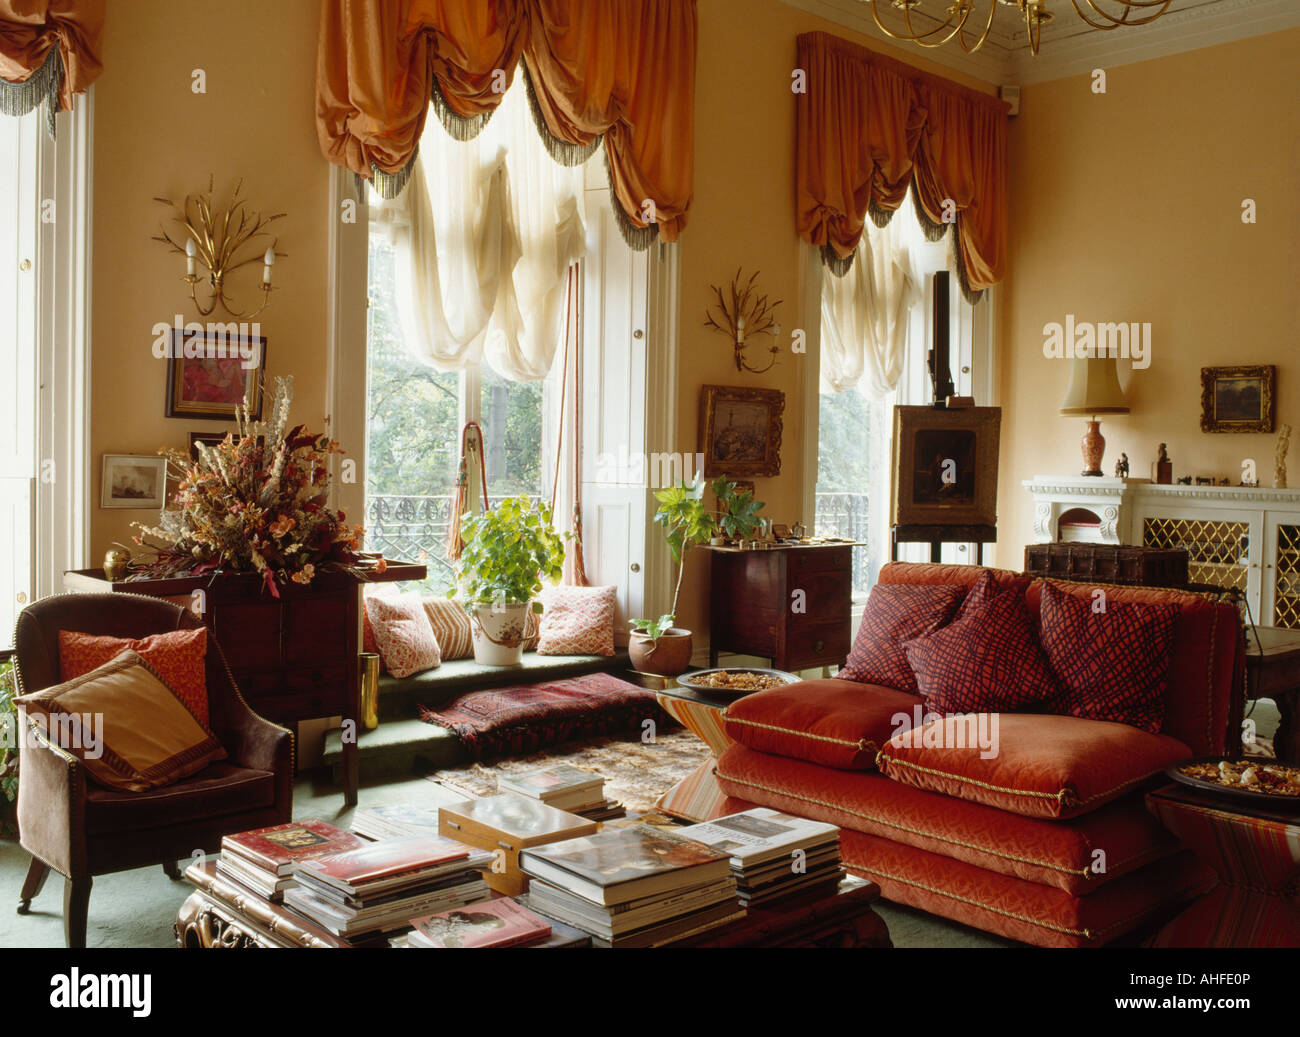 Armchair And Rust Velvet Sofa On Either Side Of Table Piled With Books In  Townhouse Living Room With Peach Ruched Blinds